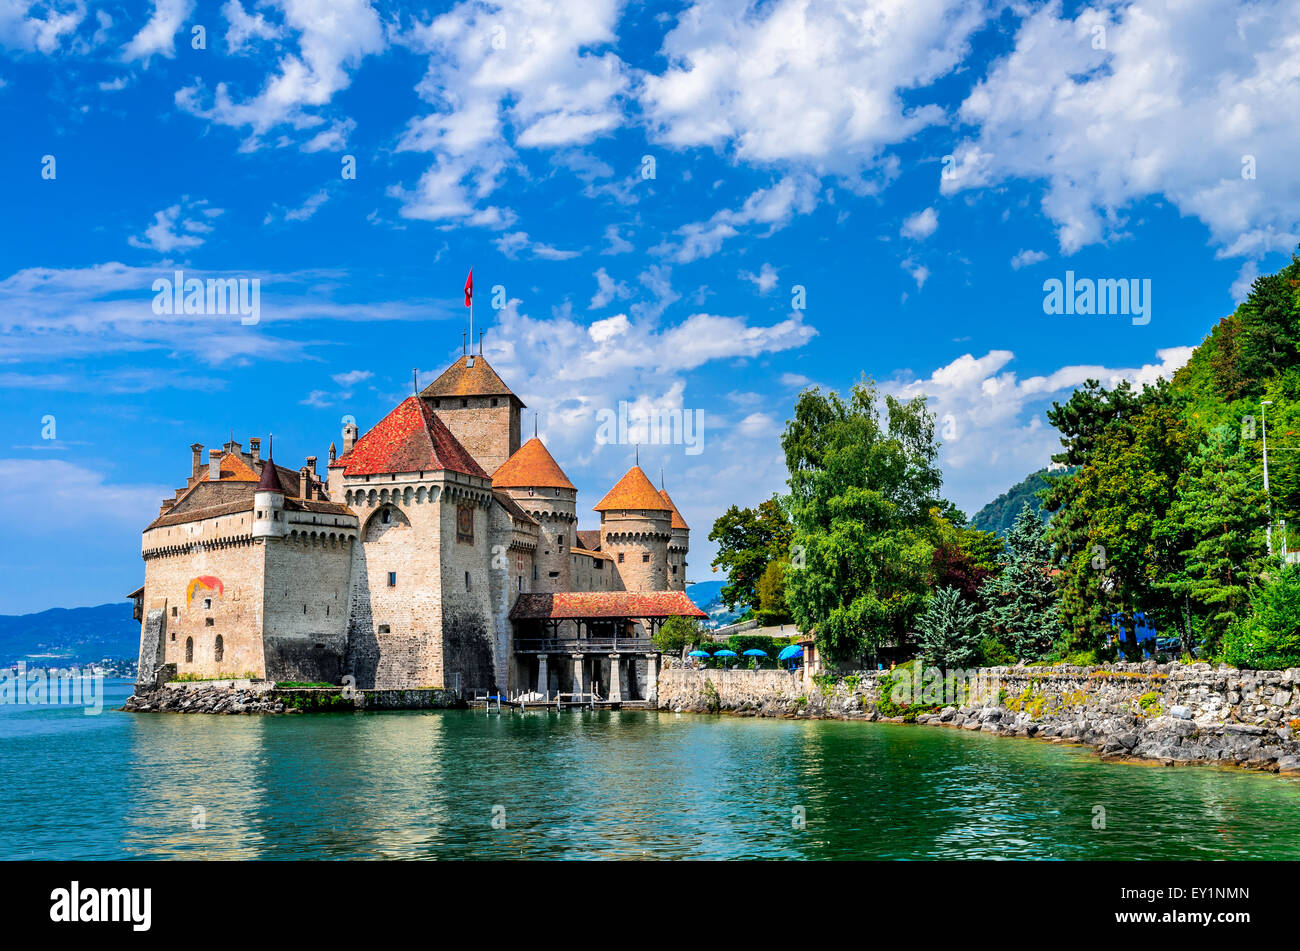 Switzerland. Chillon Castle one of the most visited castle in Swiss attracts at Geneva Lake. - Stock Image